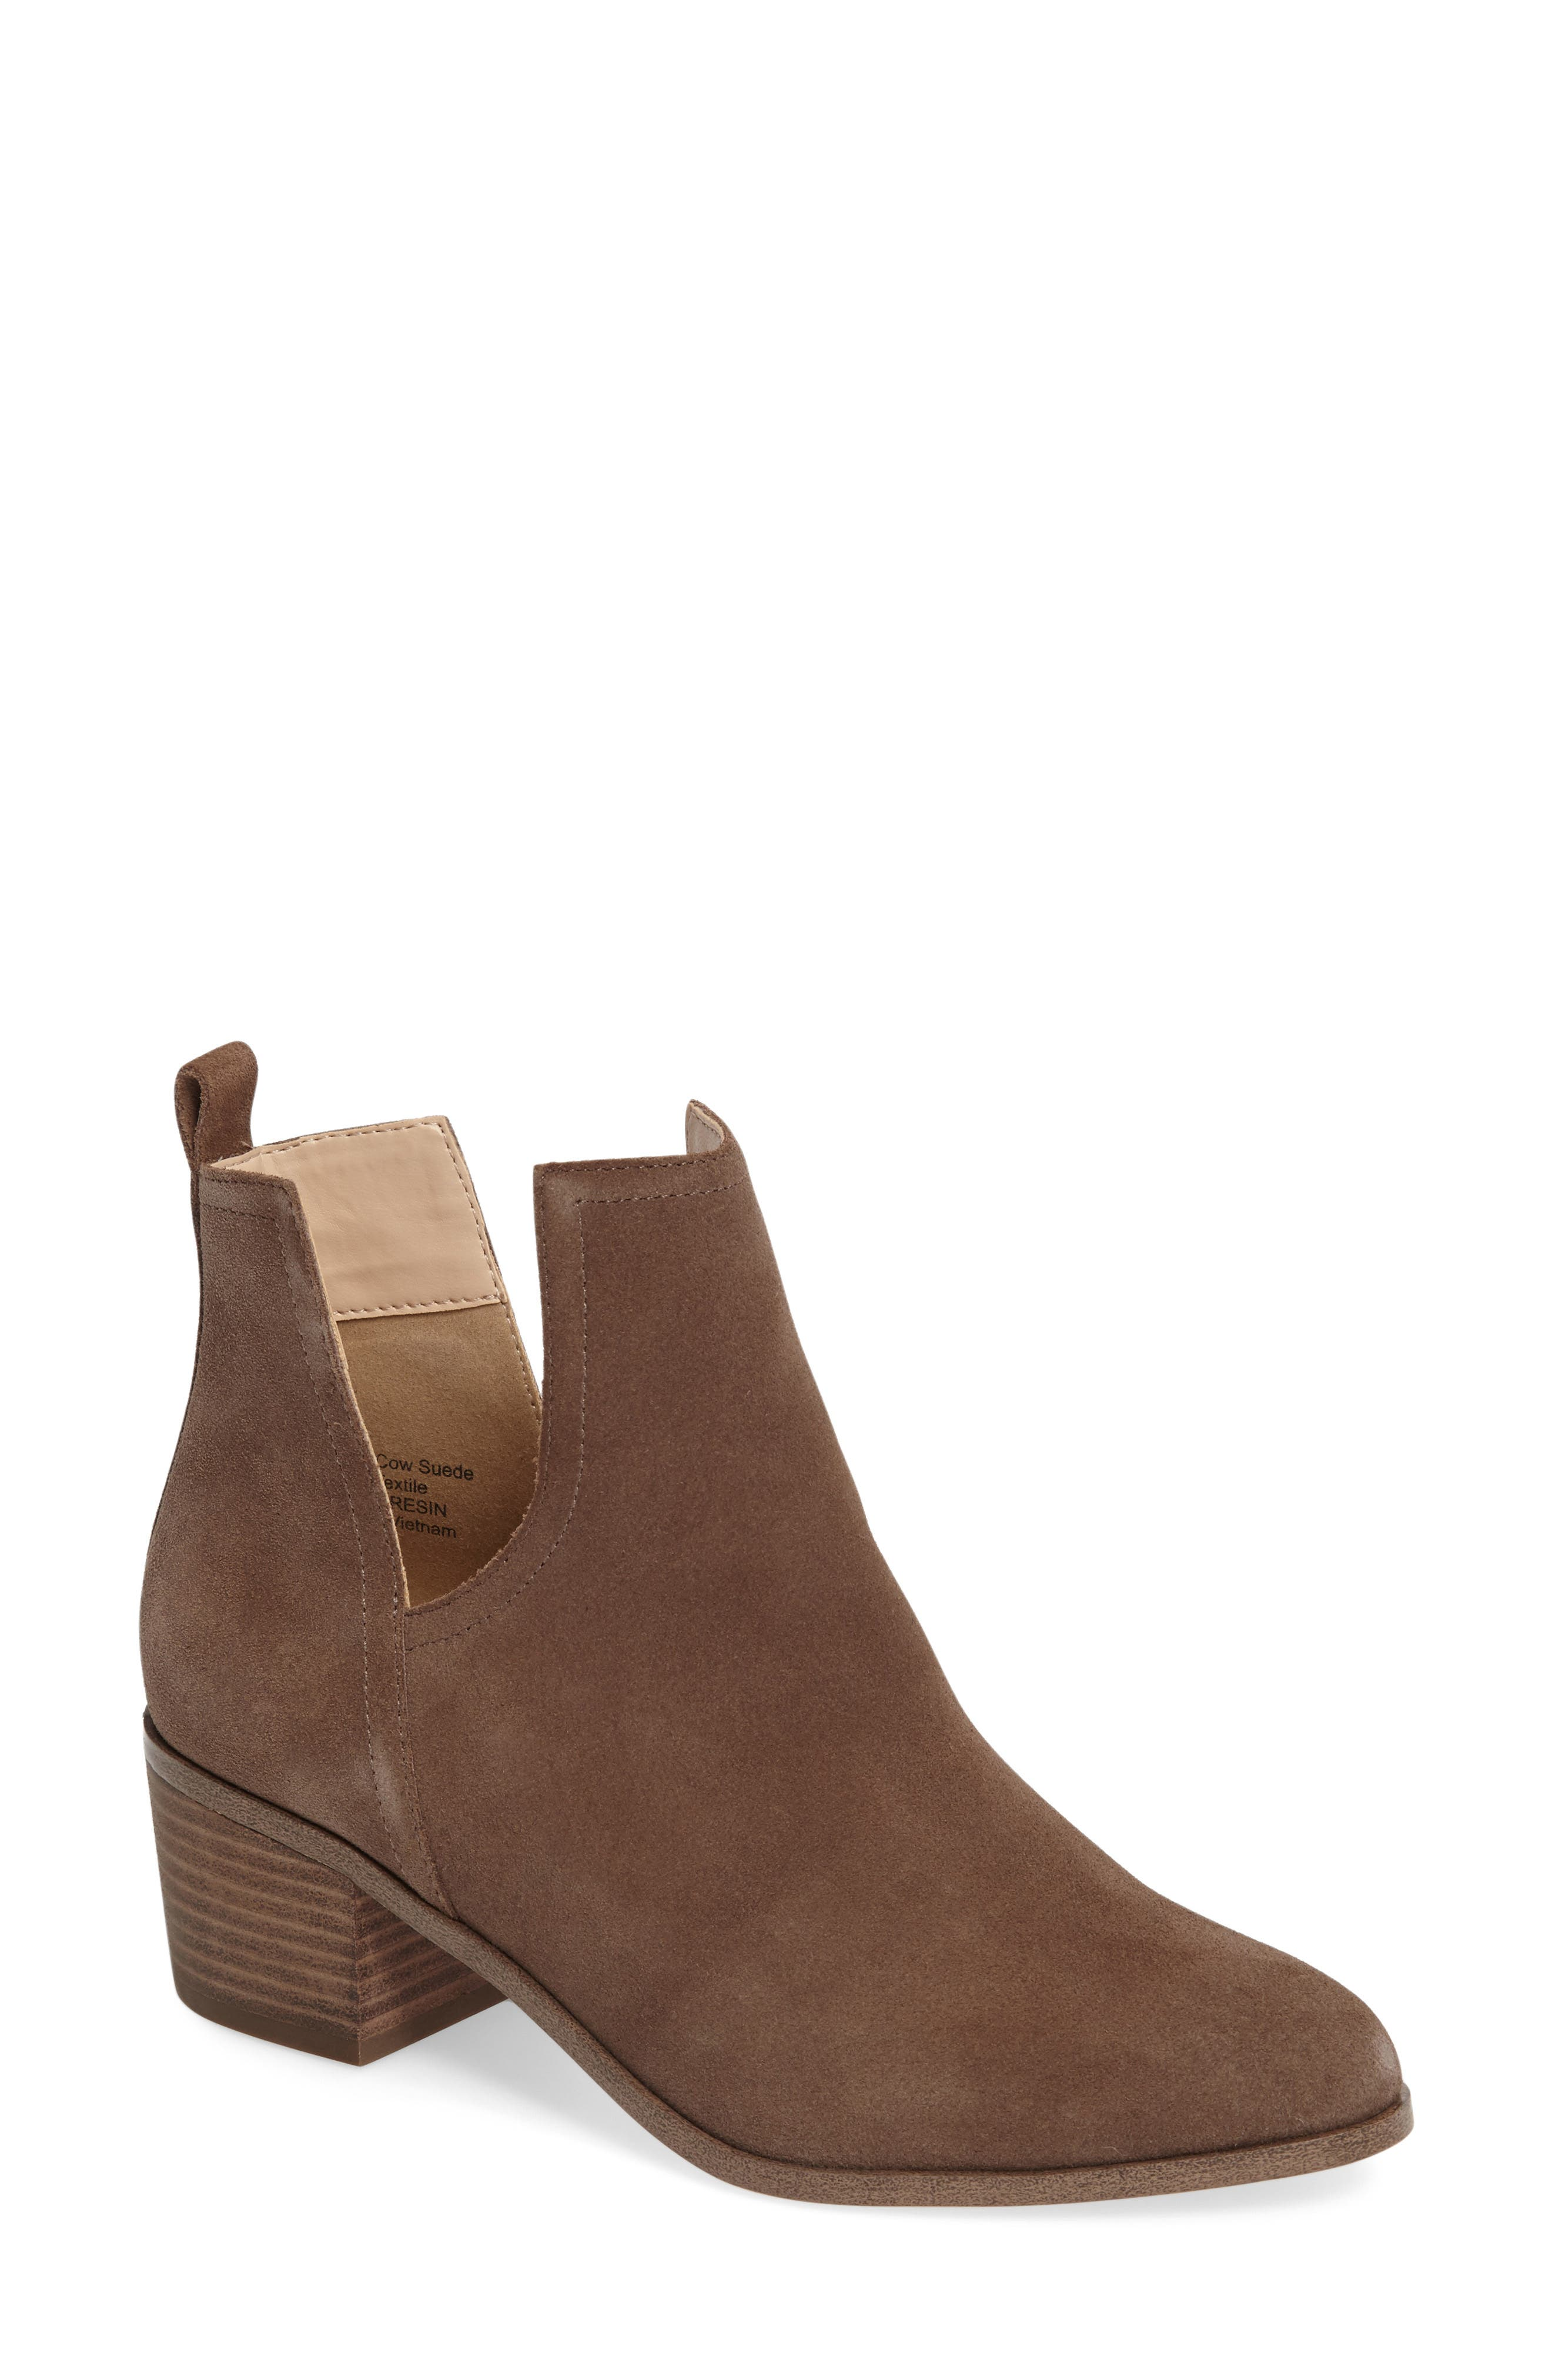 Main Image - Sole Society Madrid Bootie (Women)